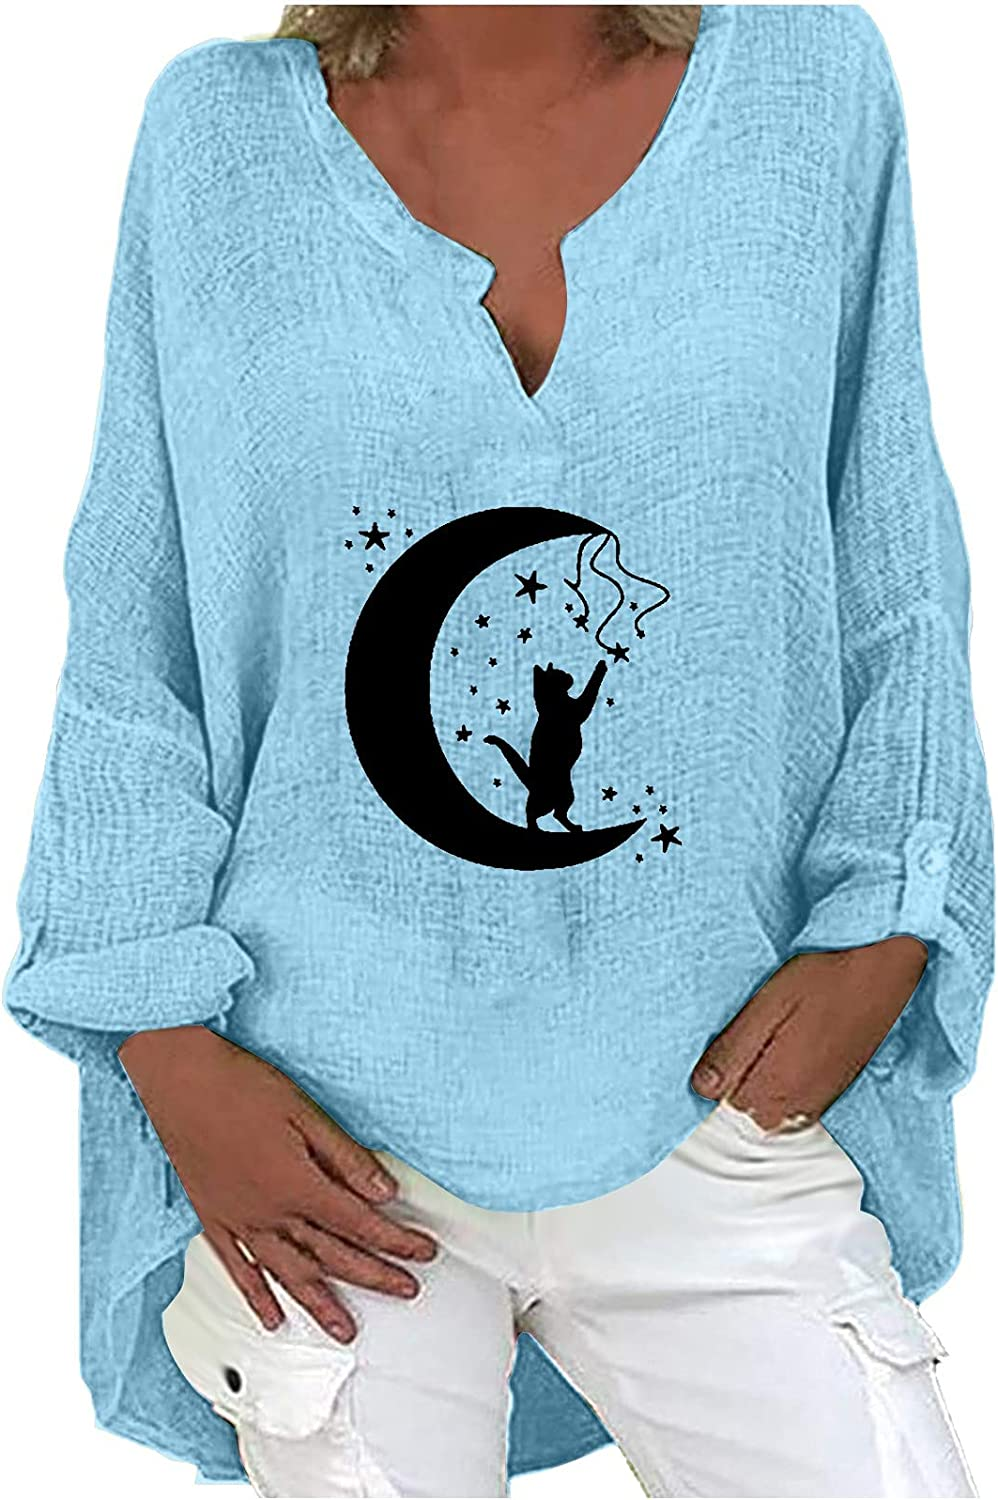 Autumn Tops for Women Fashion V-Neck T-Shirts Casual Moon Printing Blouses Loose Long Sleeve Tees Plus Size